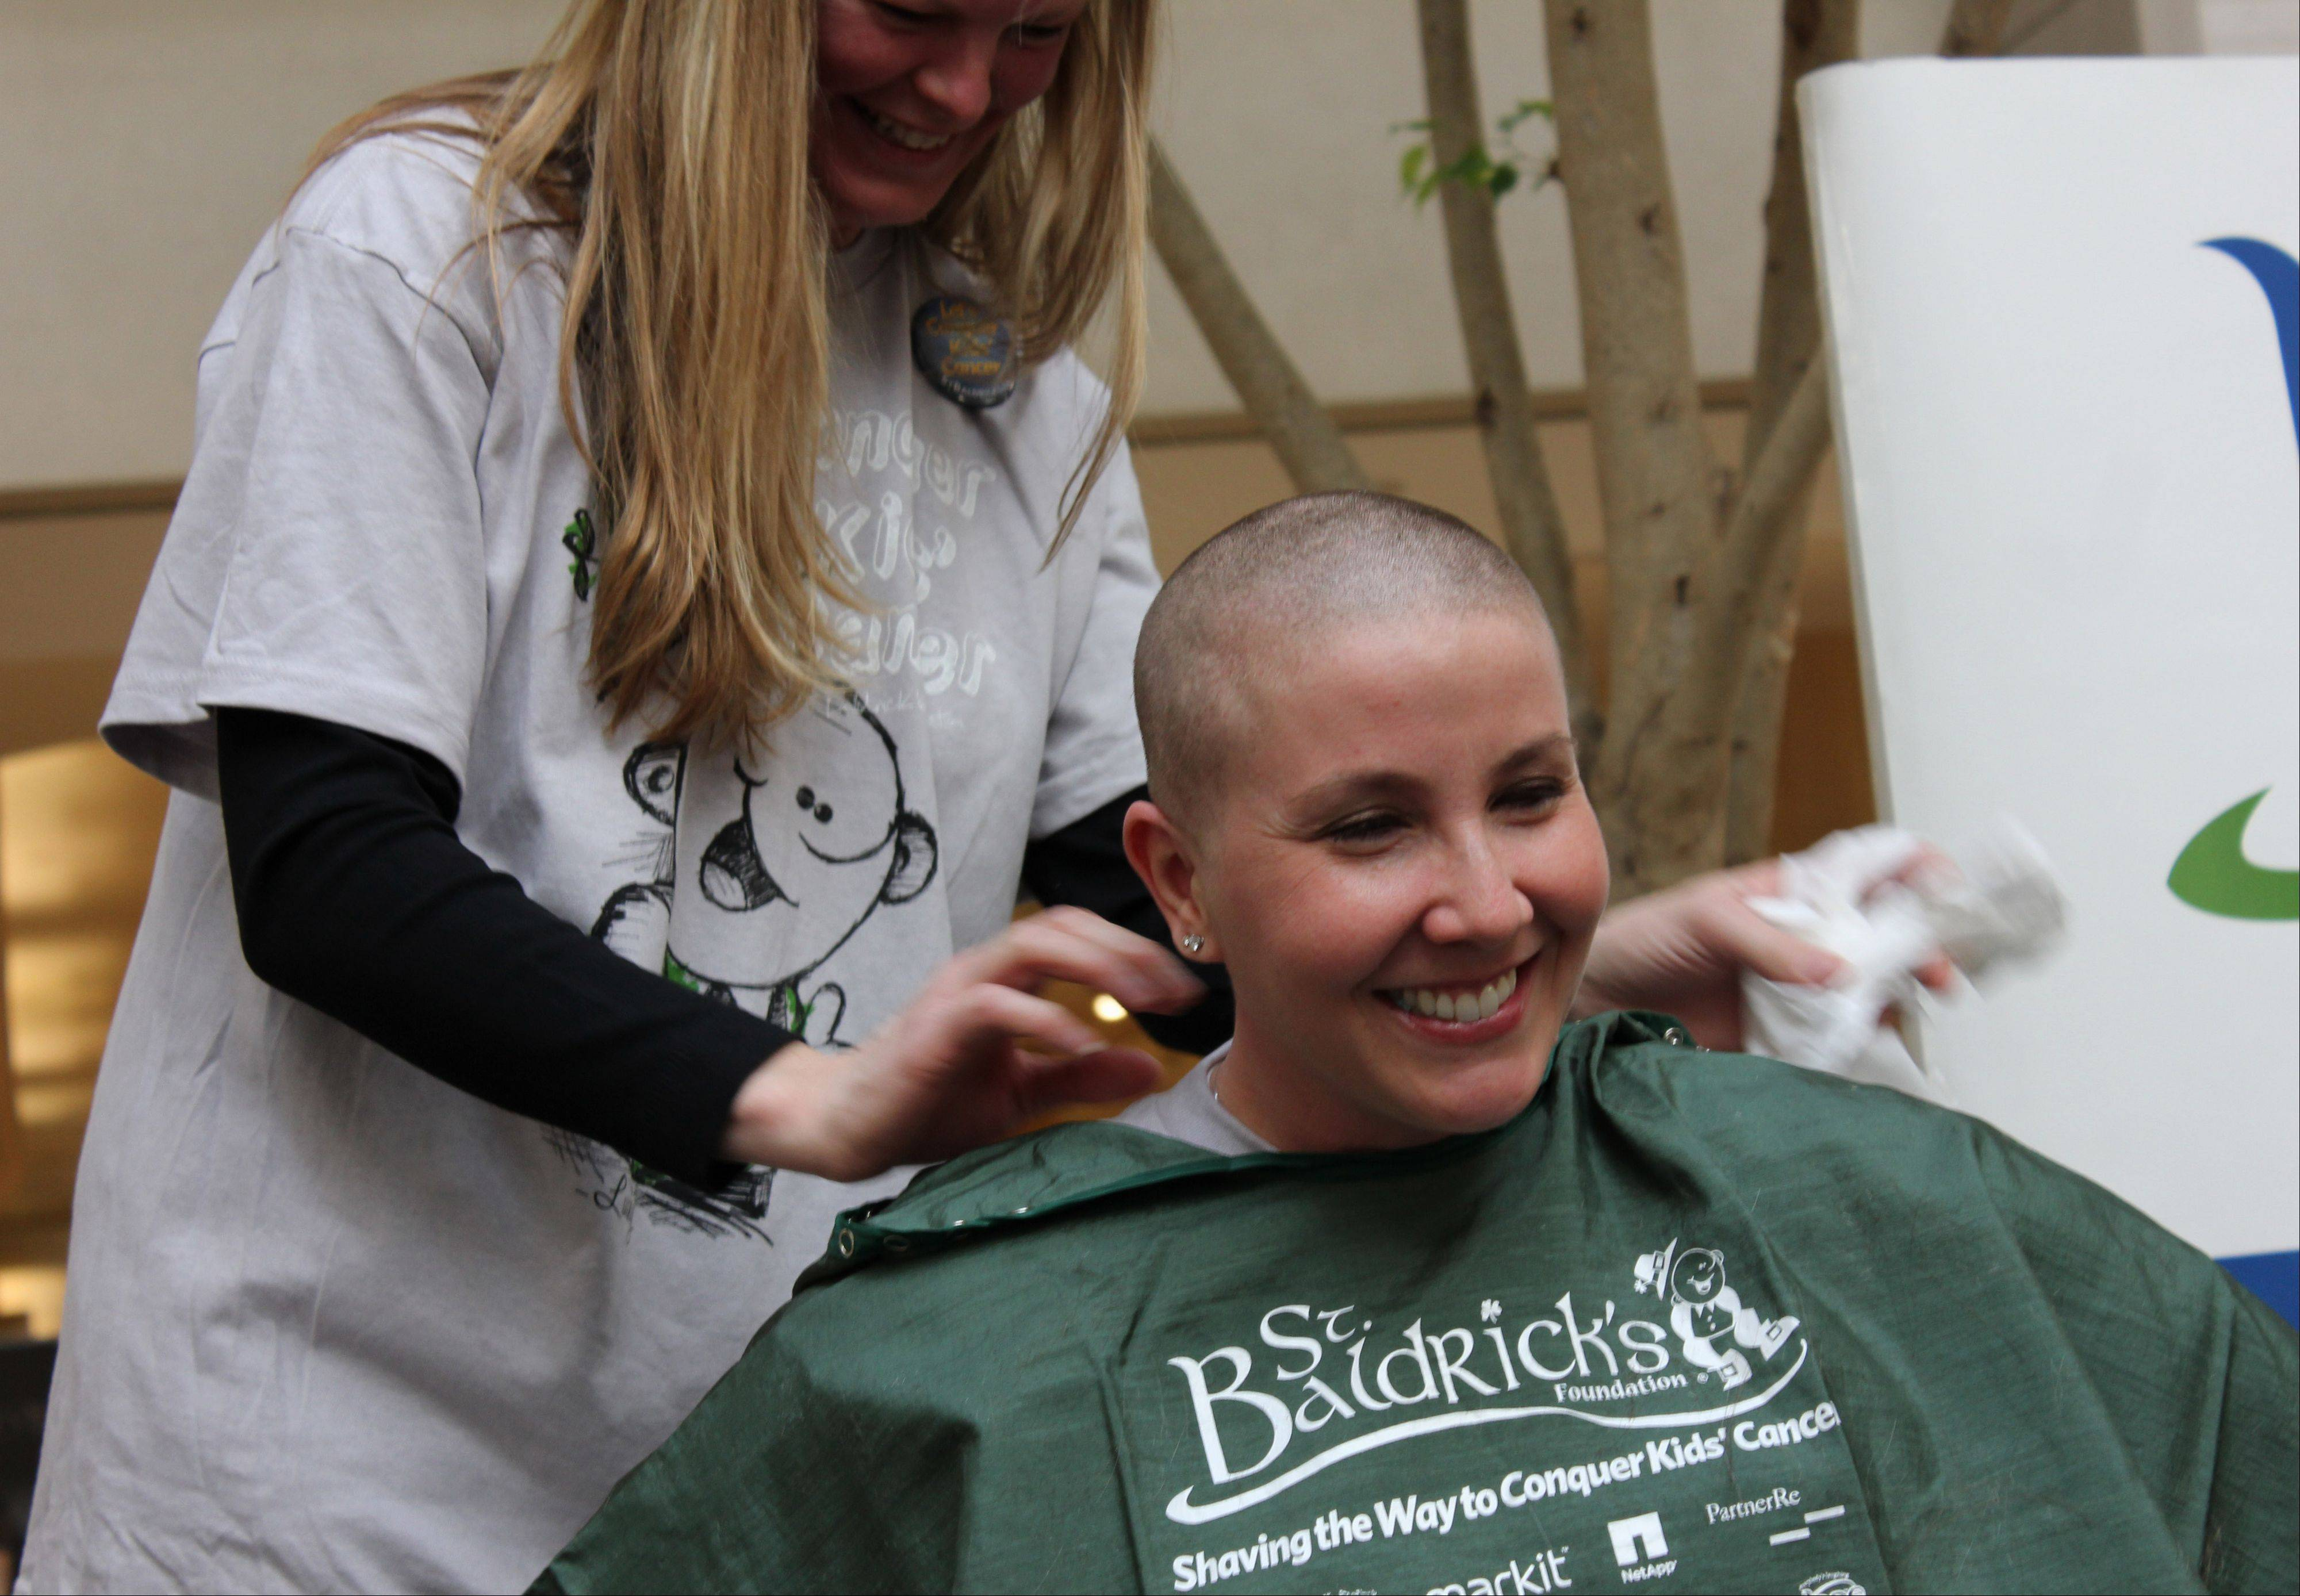 Officer Rebecca Foy volunteered for a head shave at the 2012 event and raised more than $3,000.